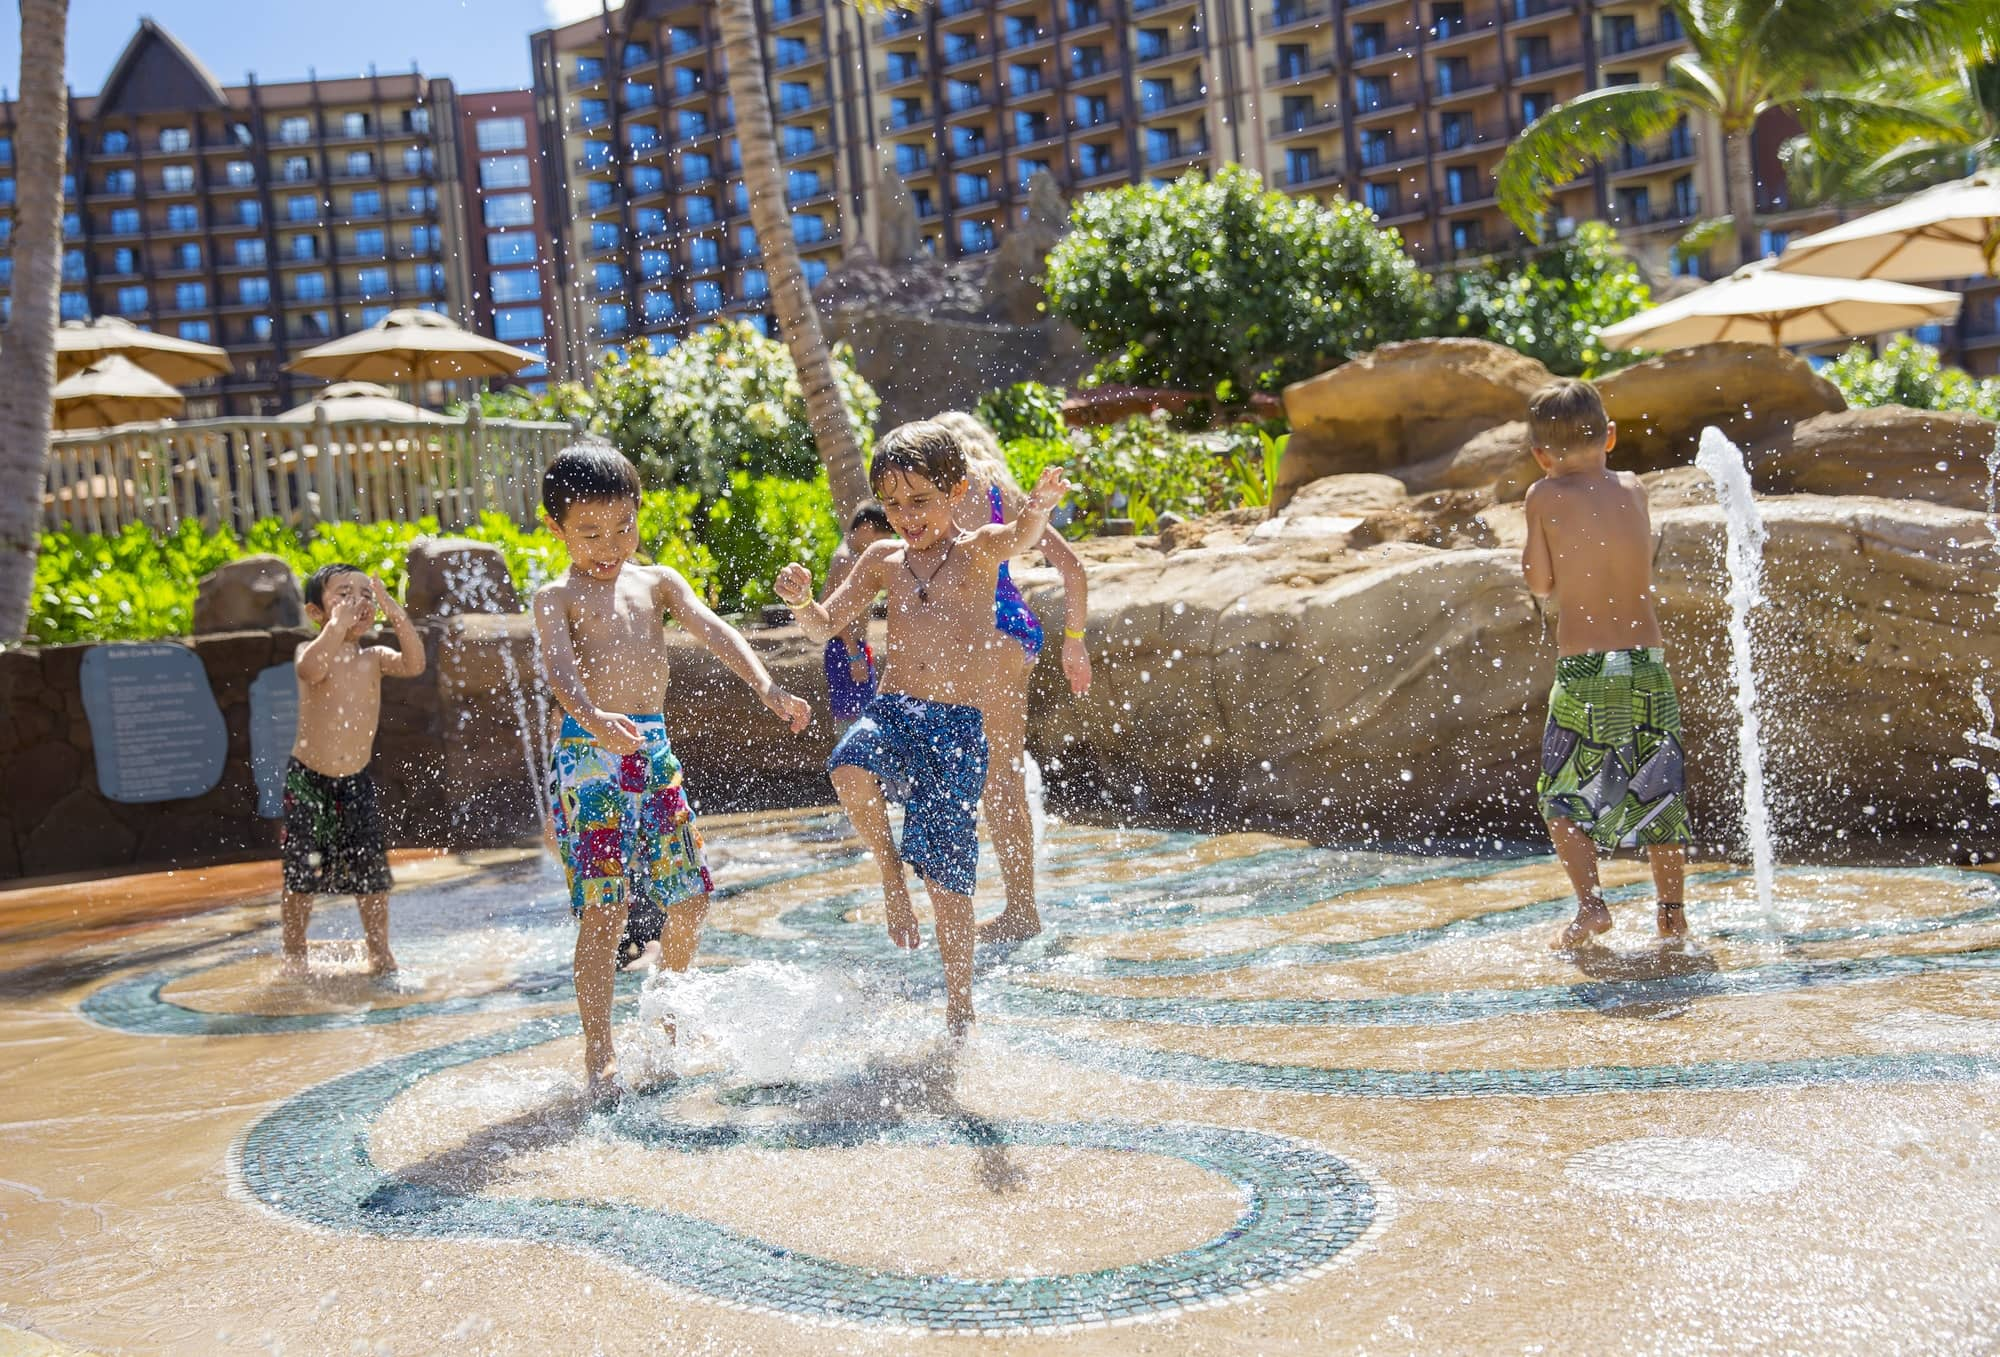 Keiki Cove at Disney Aulani splash area was created especially for young children